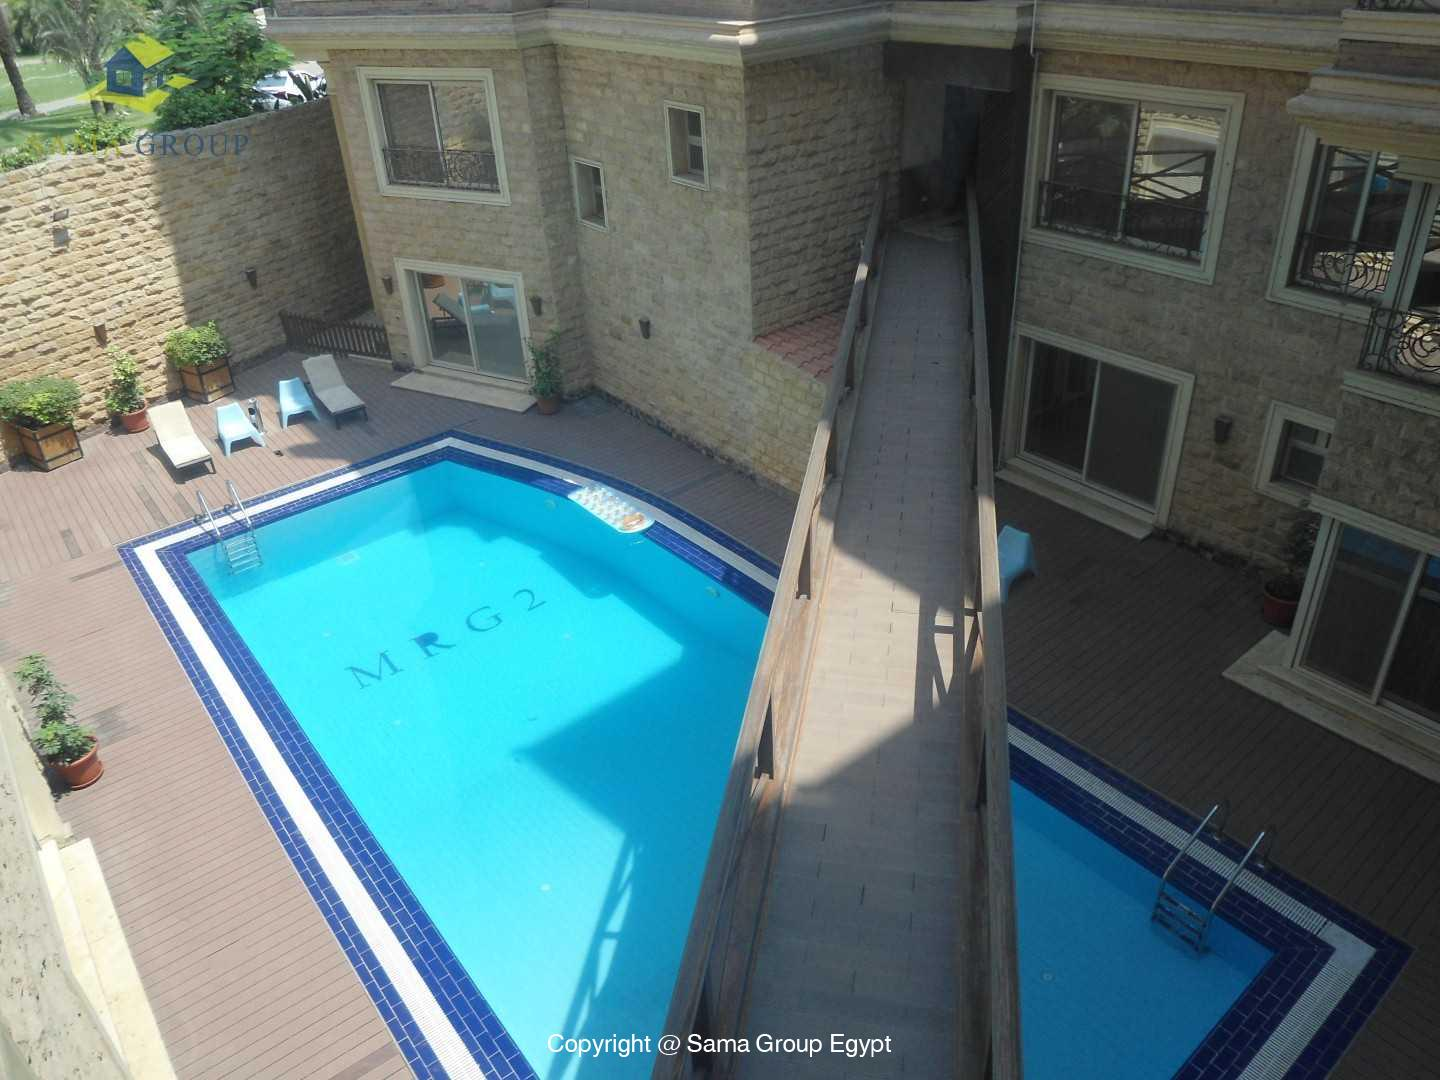 Modern Apartment With Pool Shared For Rent In Maadi,Modern Furnished,Apartment NO #1